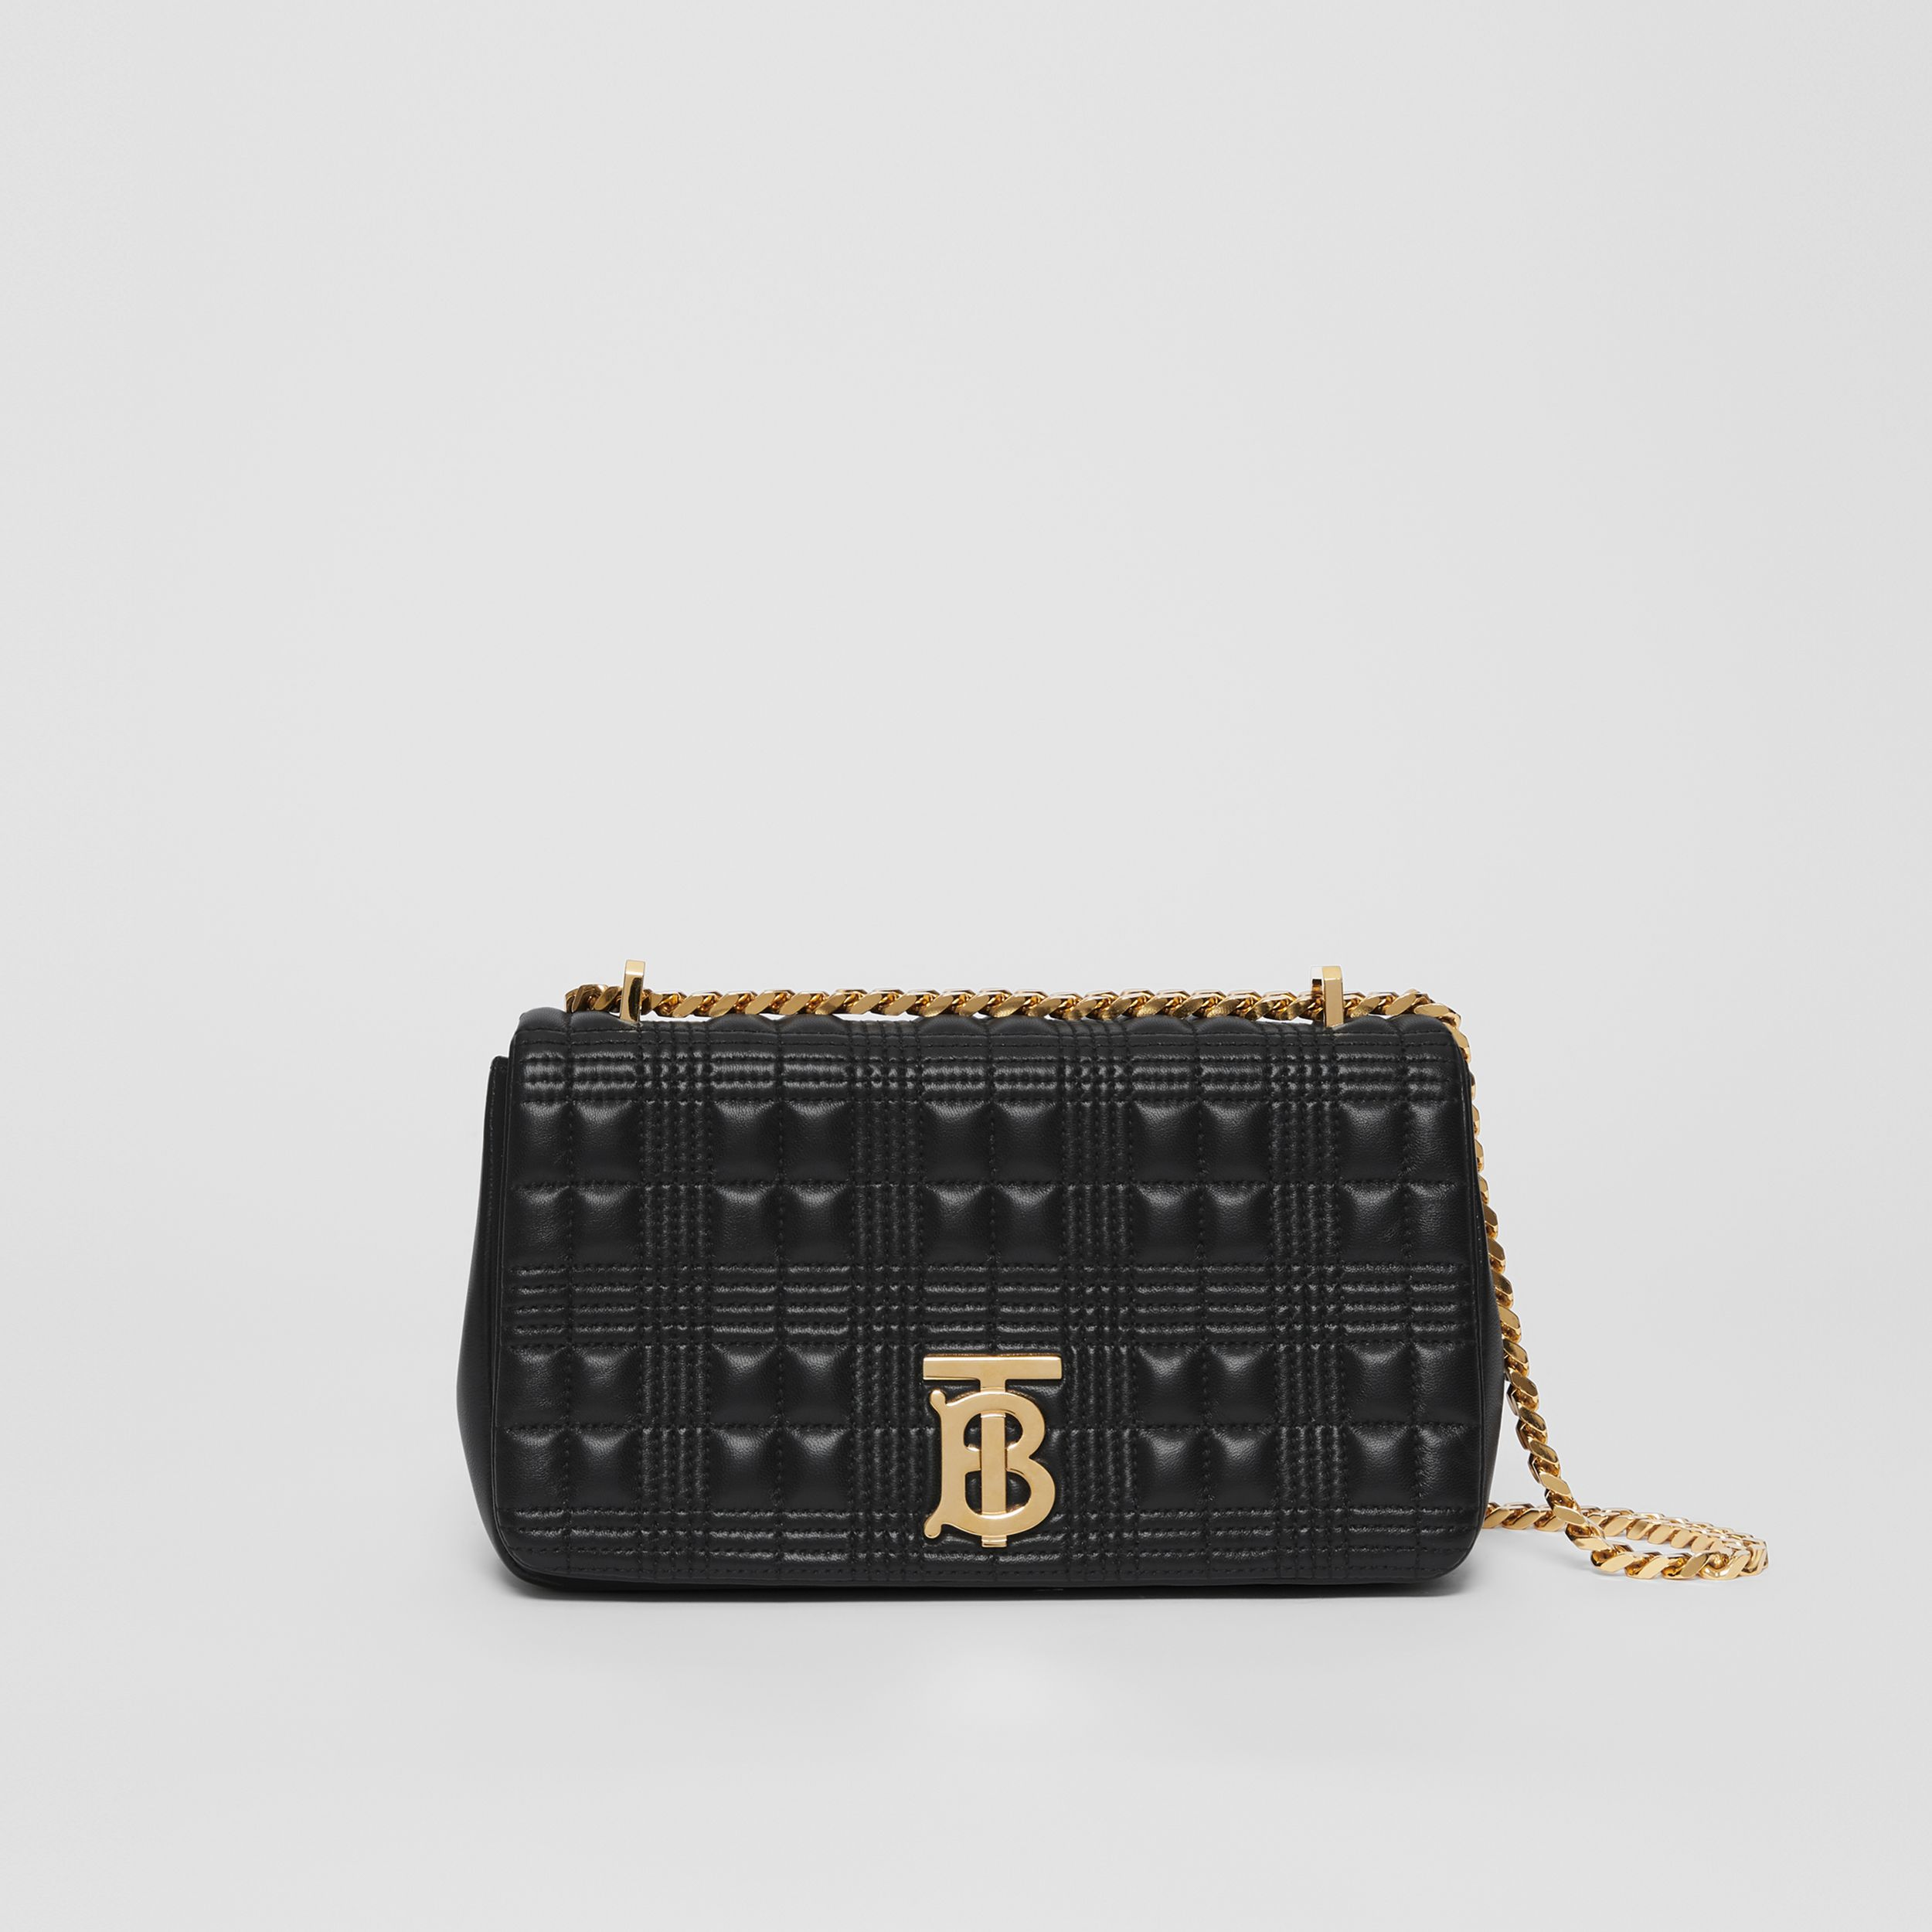 Small Quilted Lambskin Lola Bag in Black/light Gold - Women | Burberry United States - 1